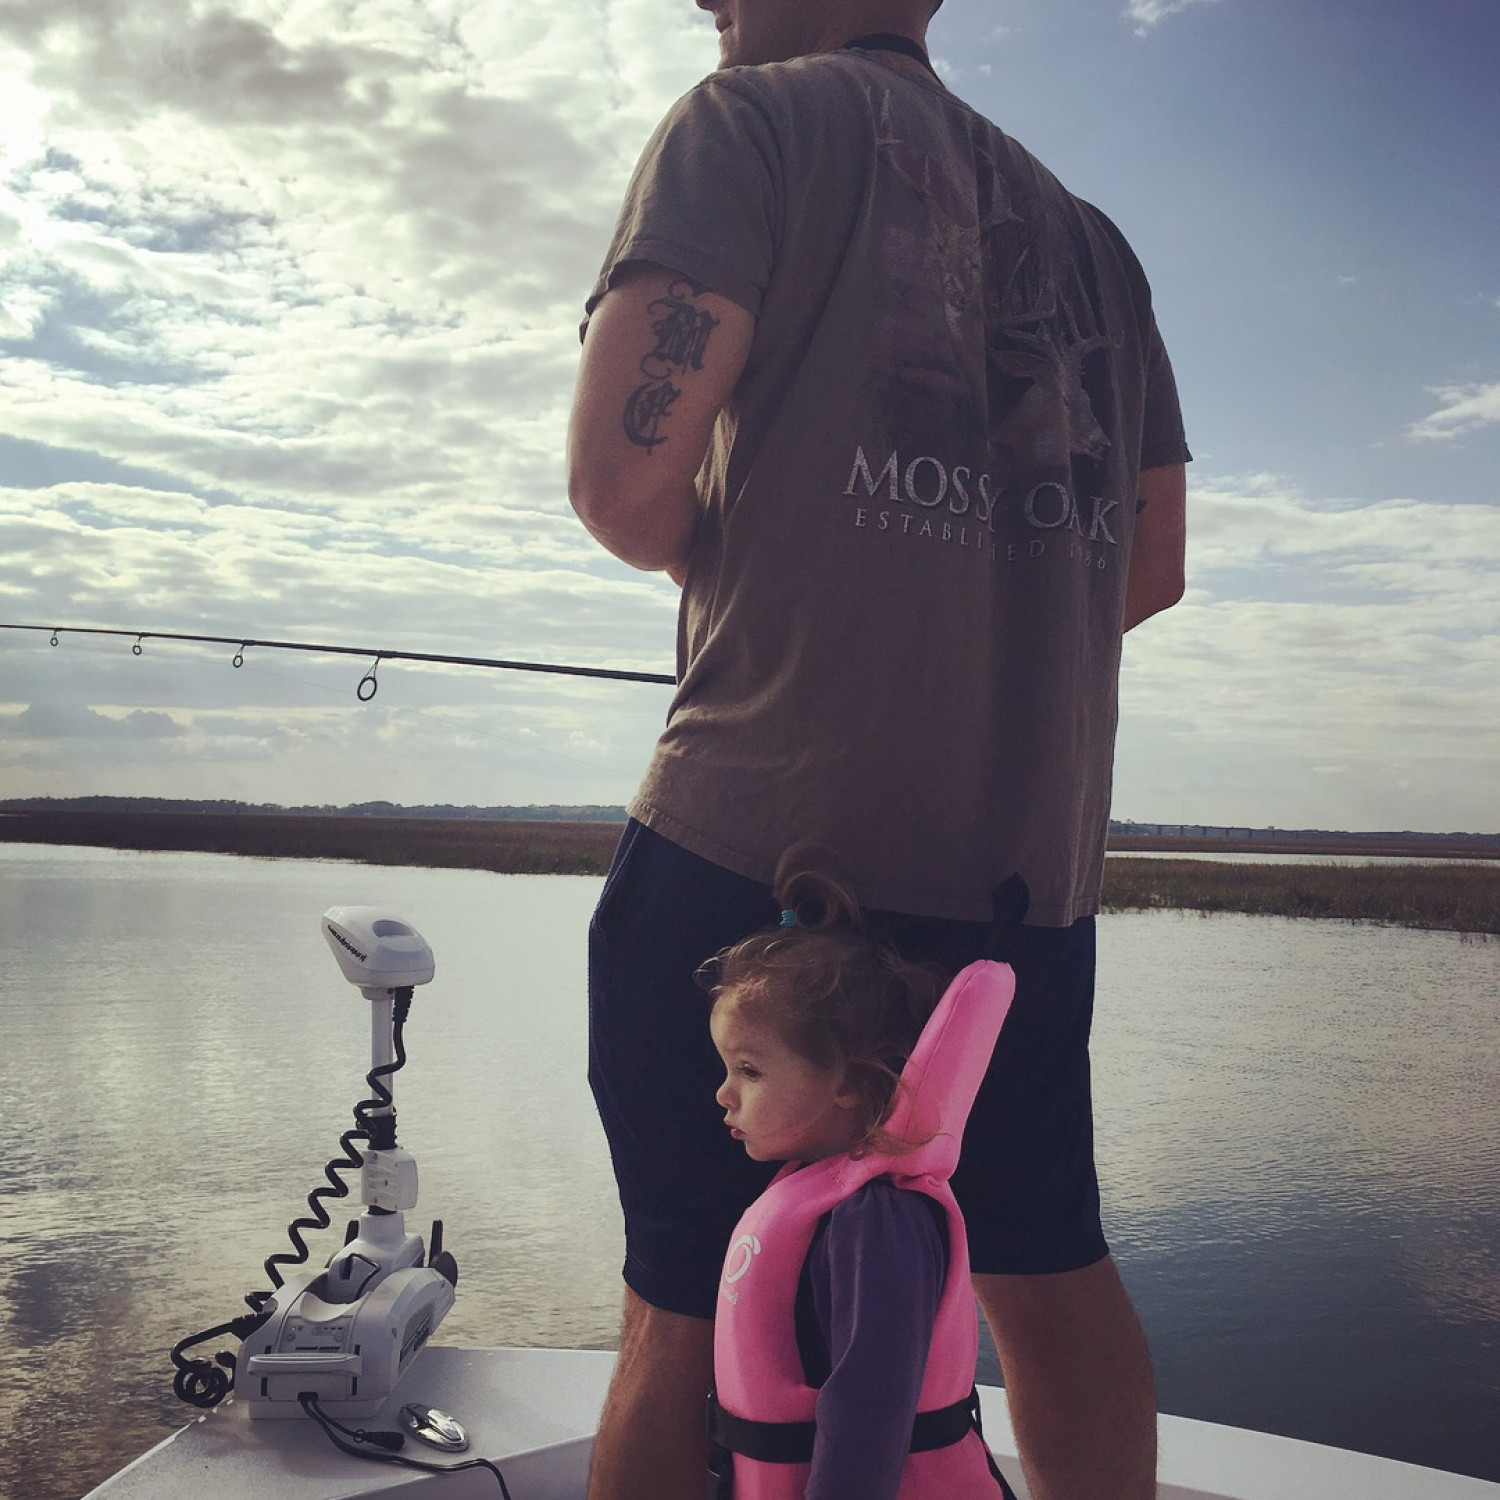 Title: Chasing tails - On board their Sportsman Masters 227 Bay Boat - Location: Beaufort SC. Participating in the Photo Contest #SportsmanMay2018